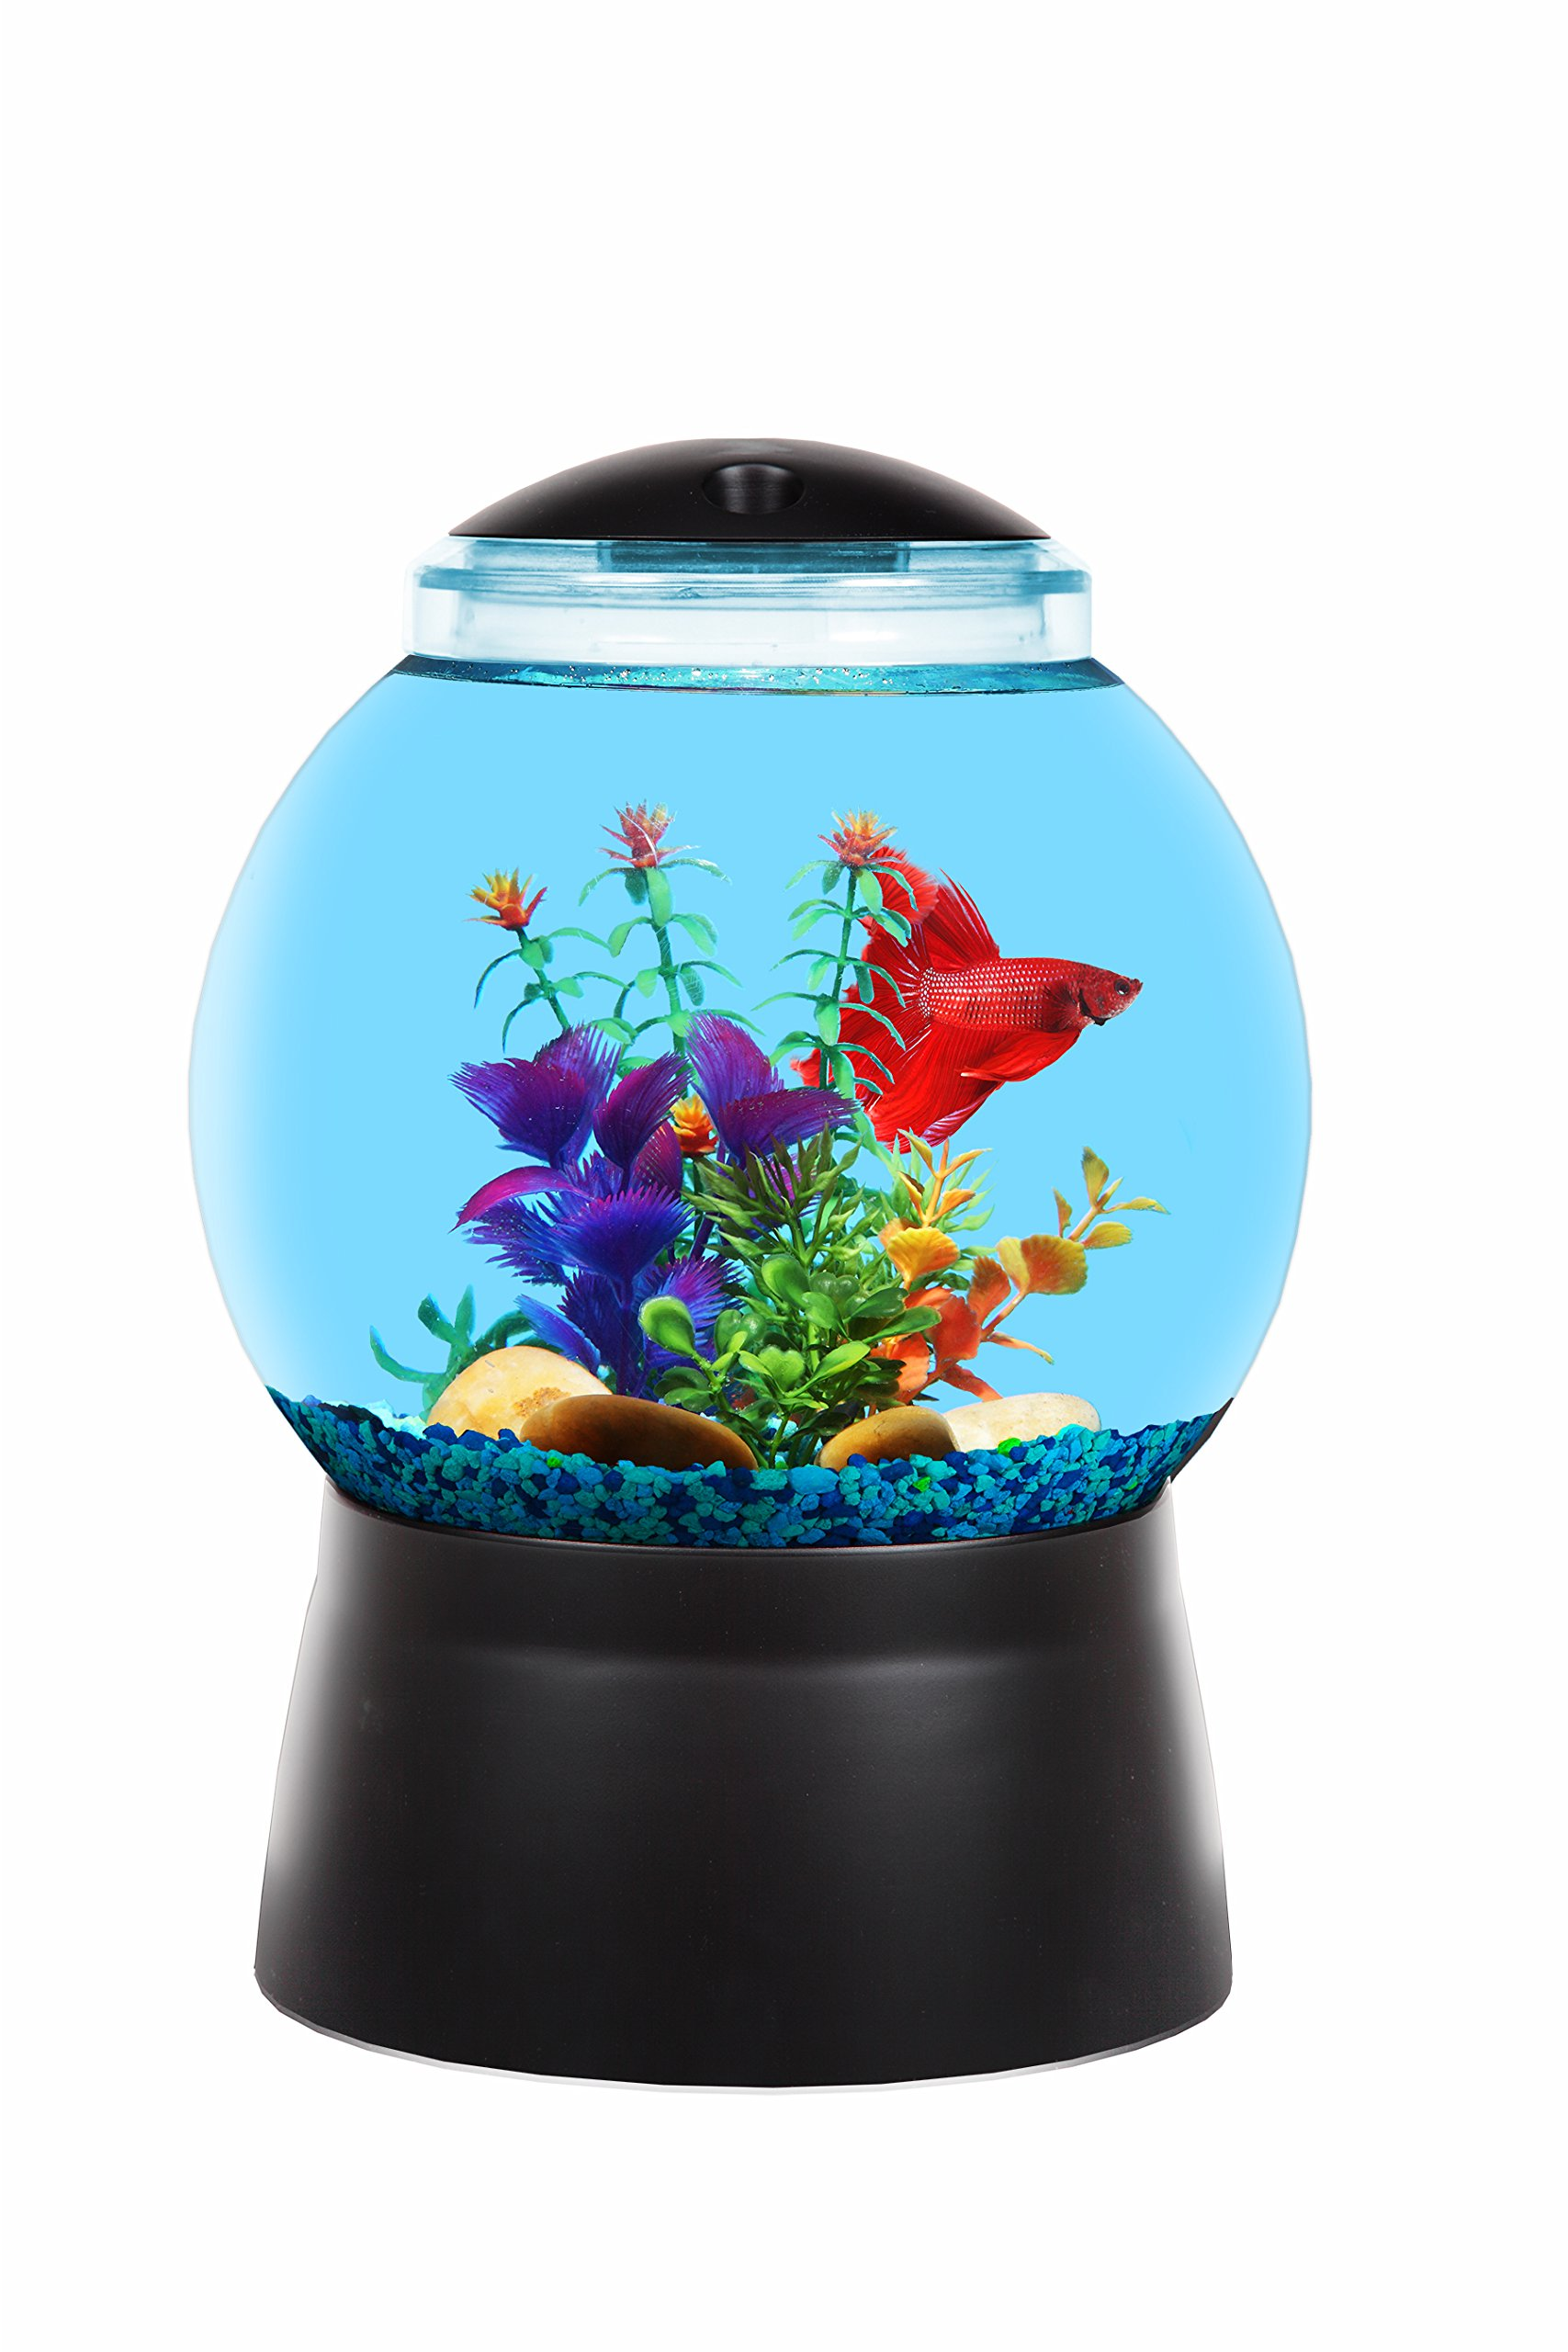 BettaTank 1-Gallon Fish Bowl with LED Lighting by Koller Products